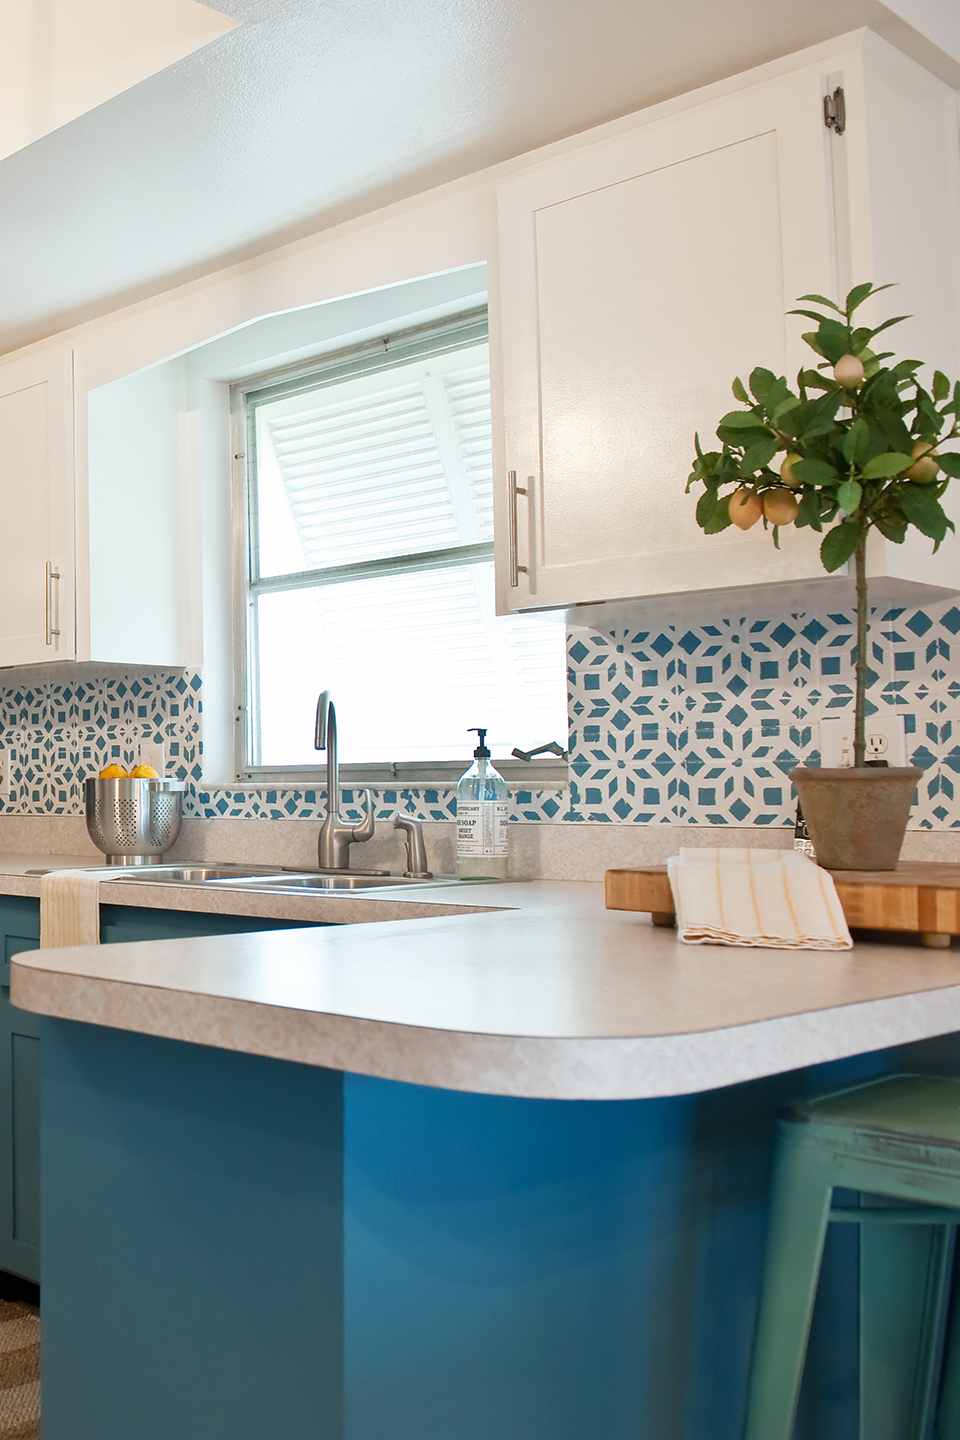 Blue and white kitchen with starburst stenciled tile